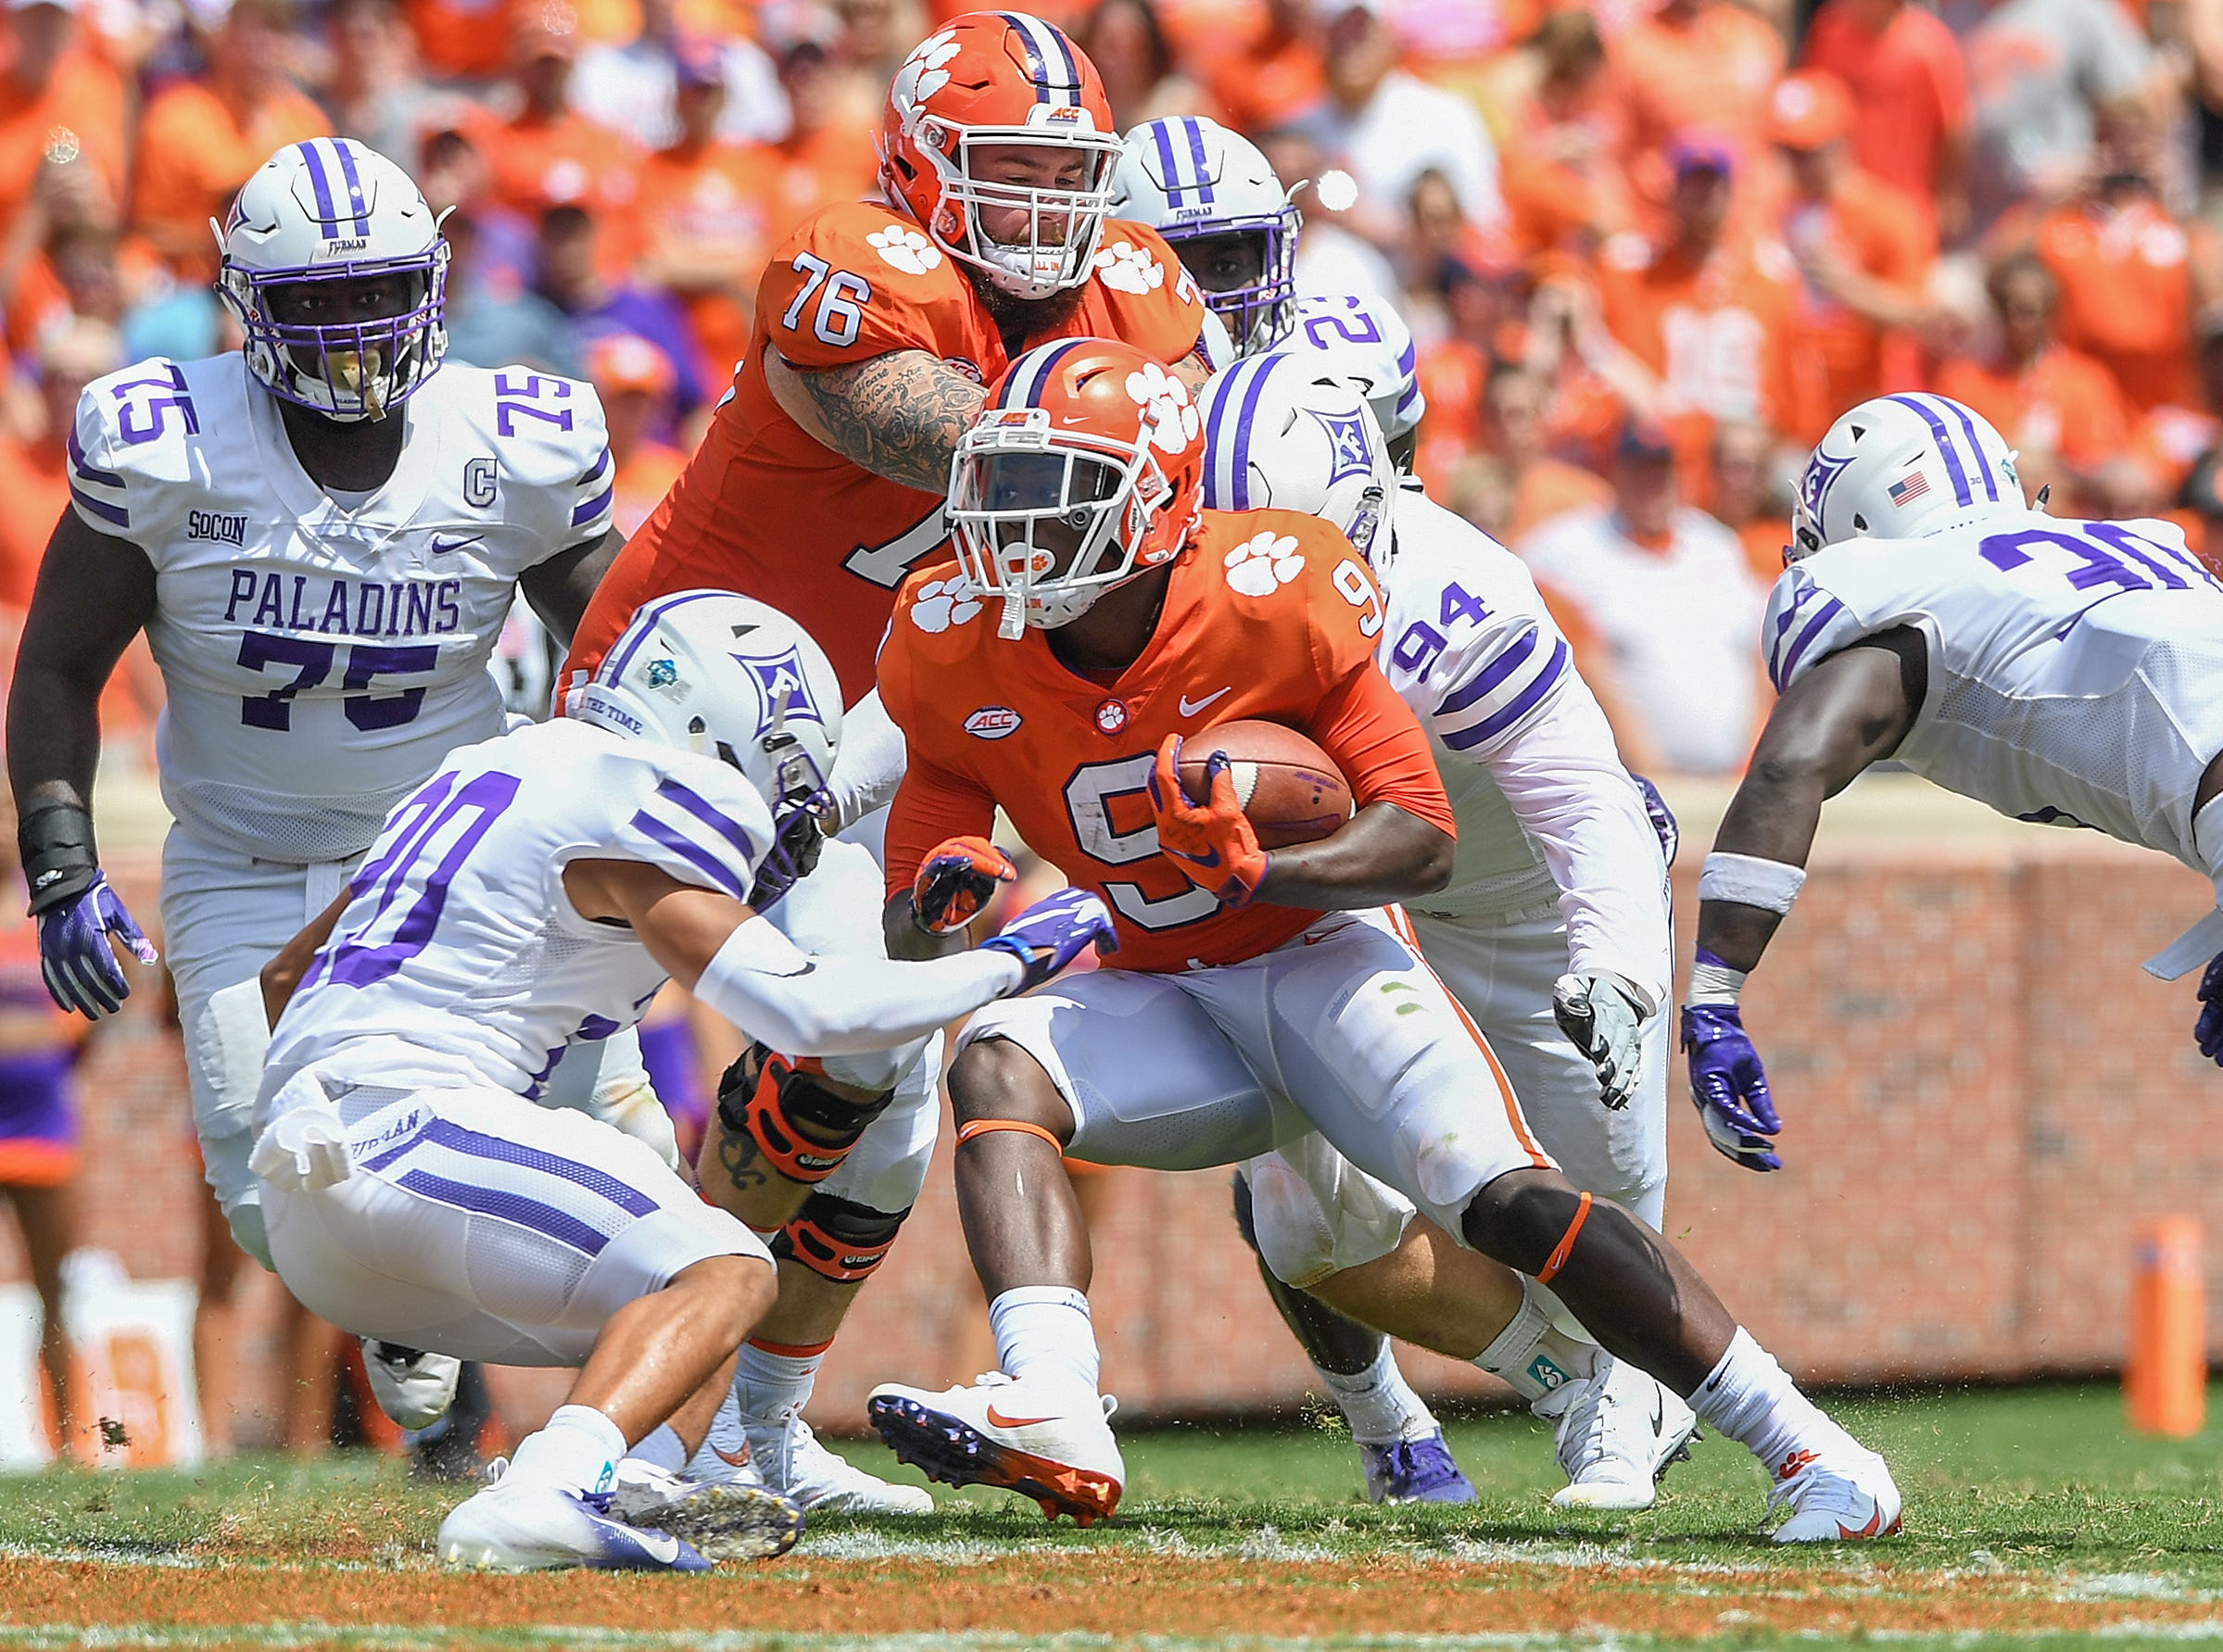 Clemson running back Travis Etienne (9) carries against Furman during the 2nd quarter Saturday, September 1, 2018 at Clemson's Memorial Stadium.